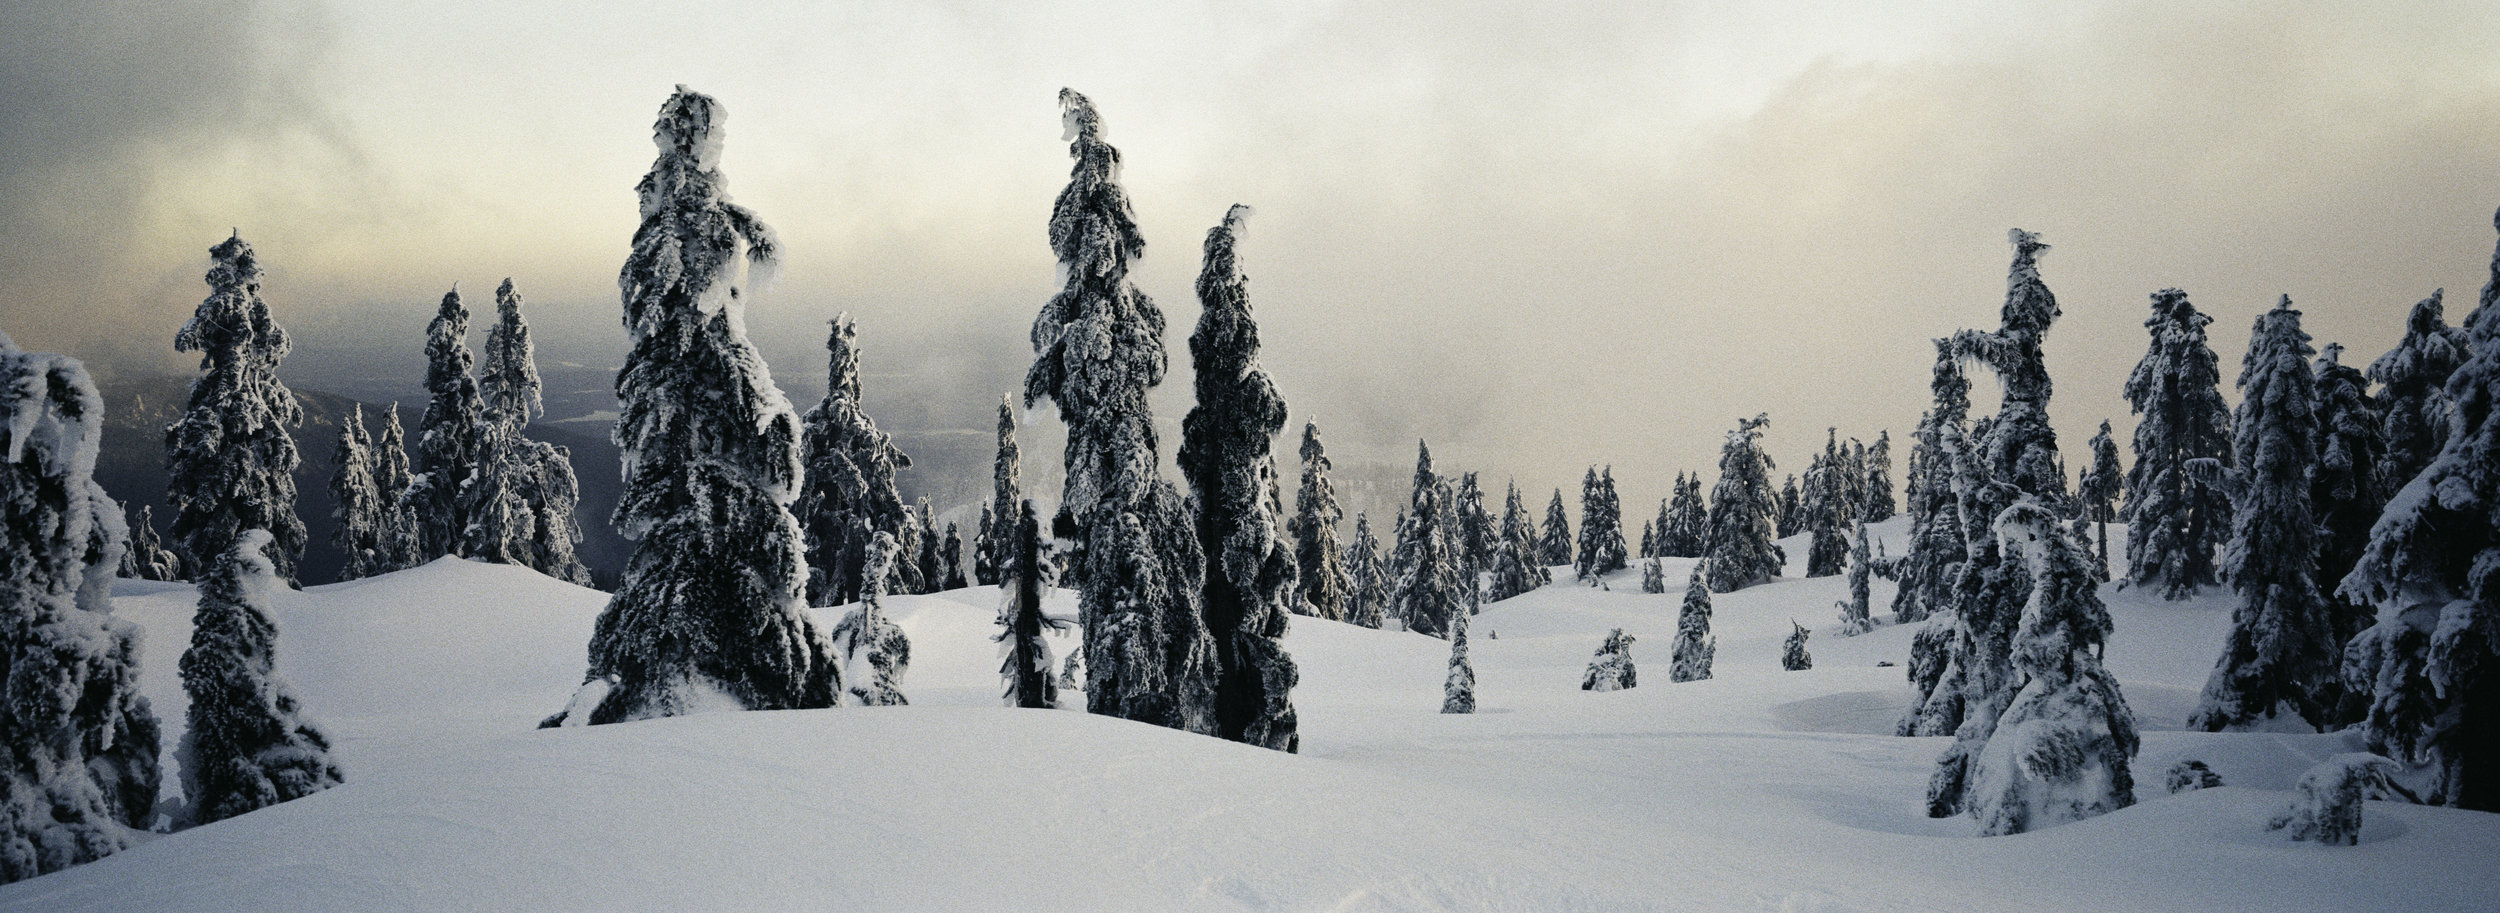 2019_XPAN_Cypress_SnowGhosts (1 of 1).jpg